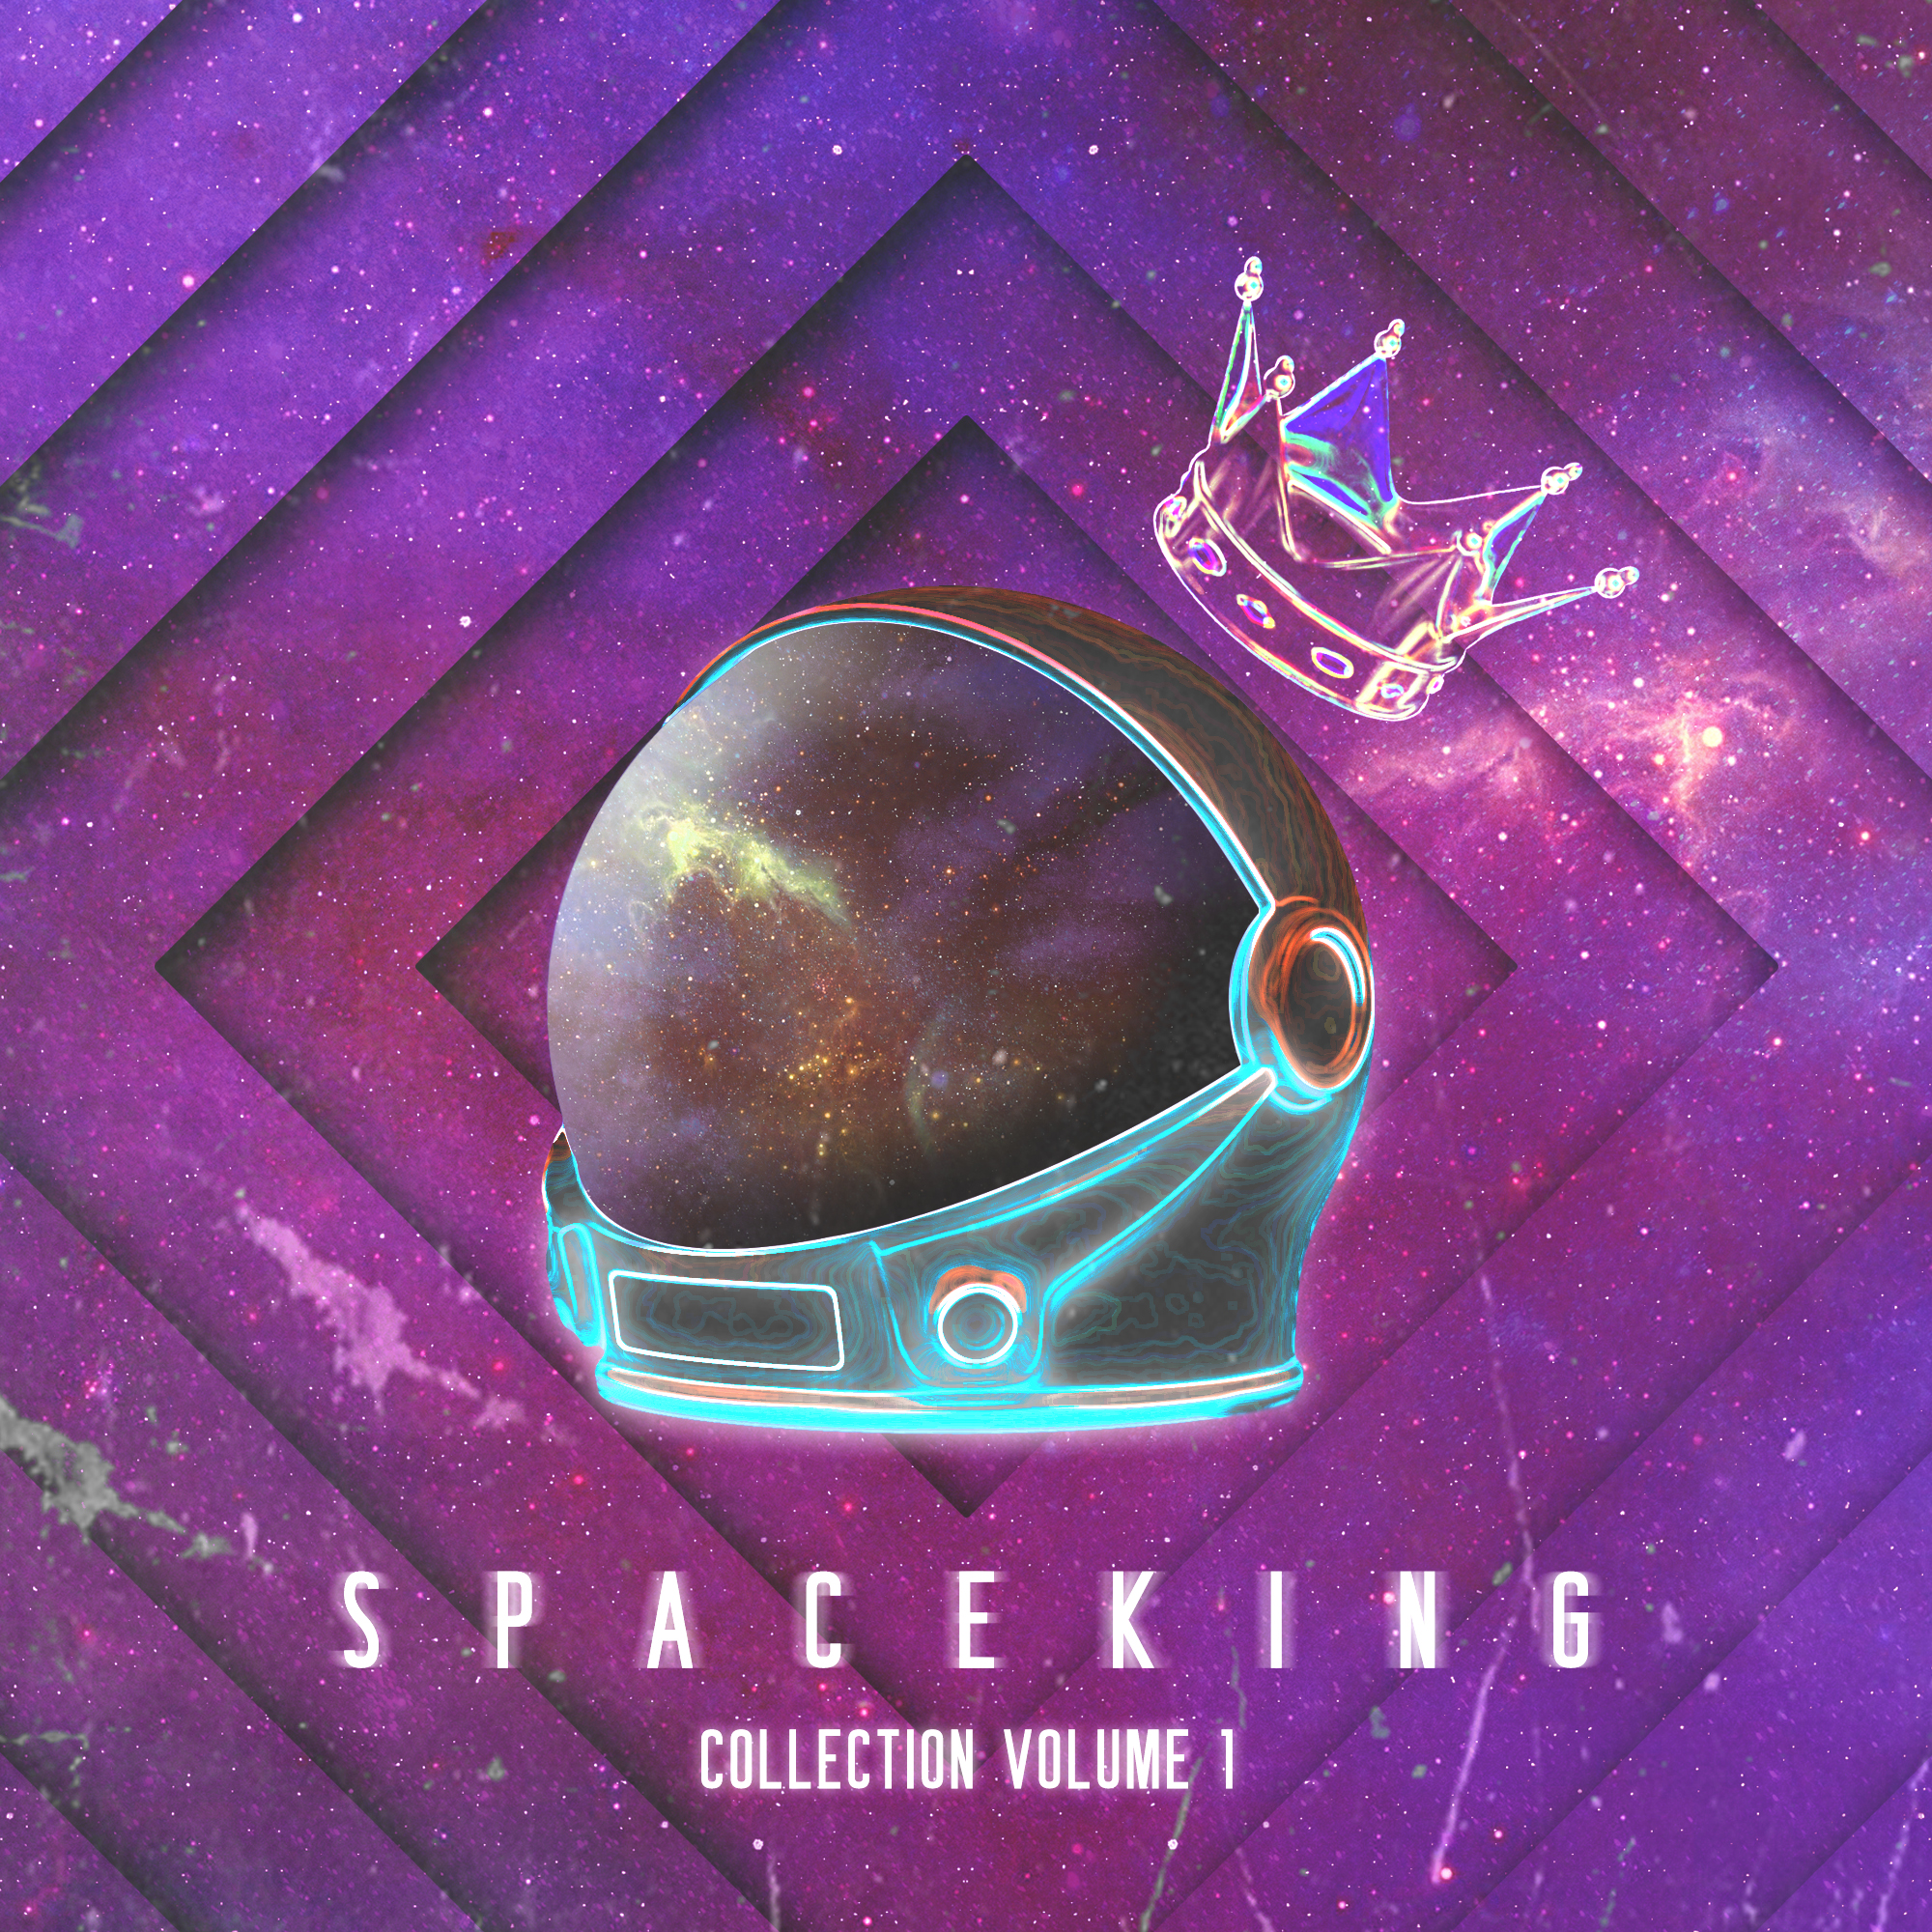 Space King Collection Volume 1 Cover.jpg